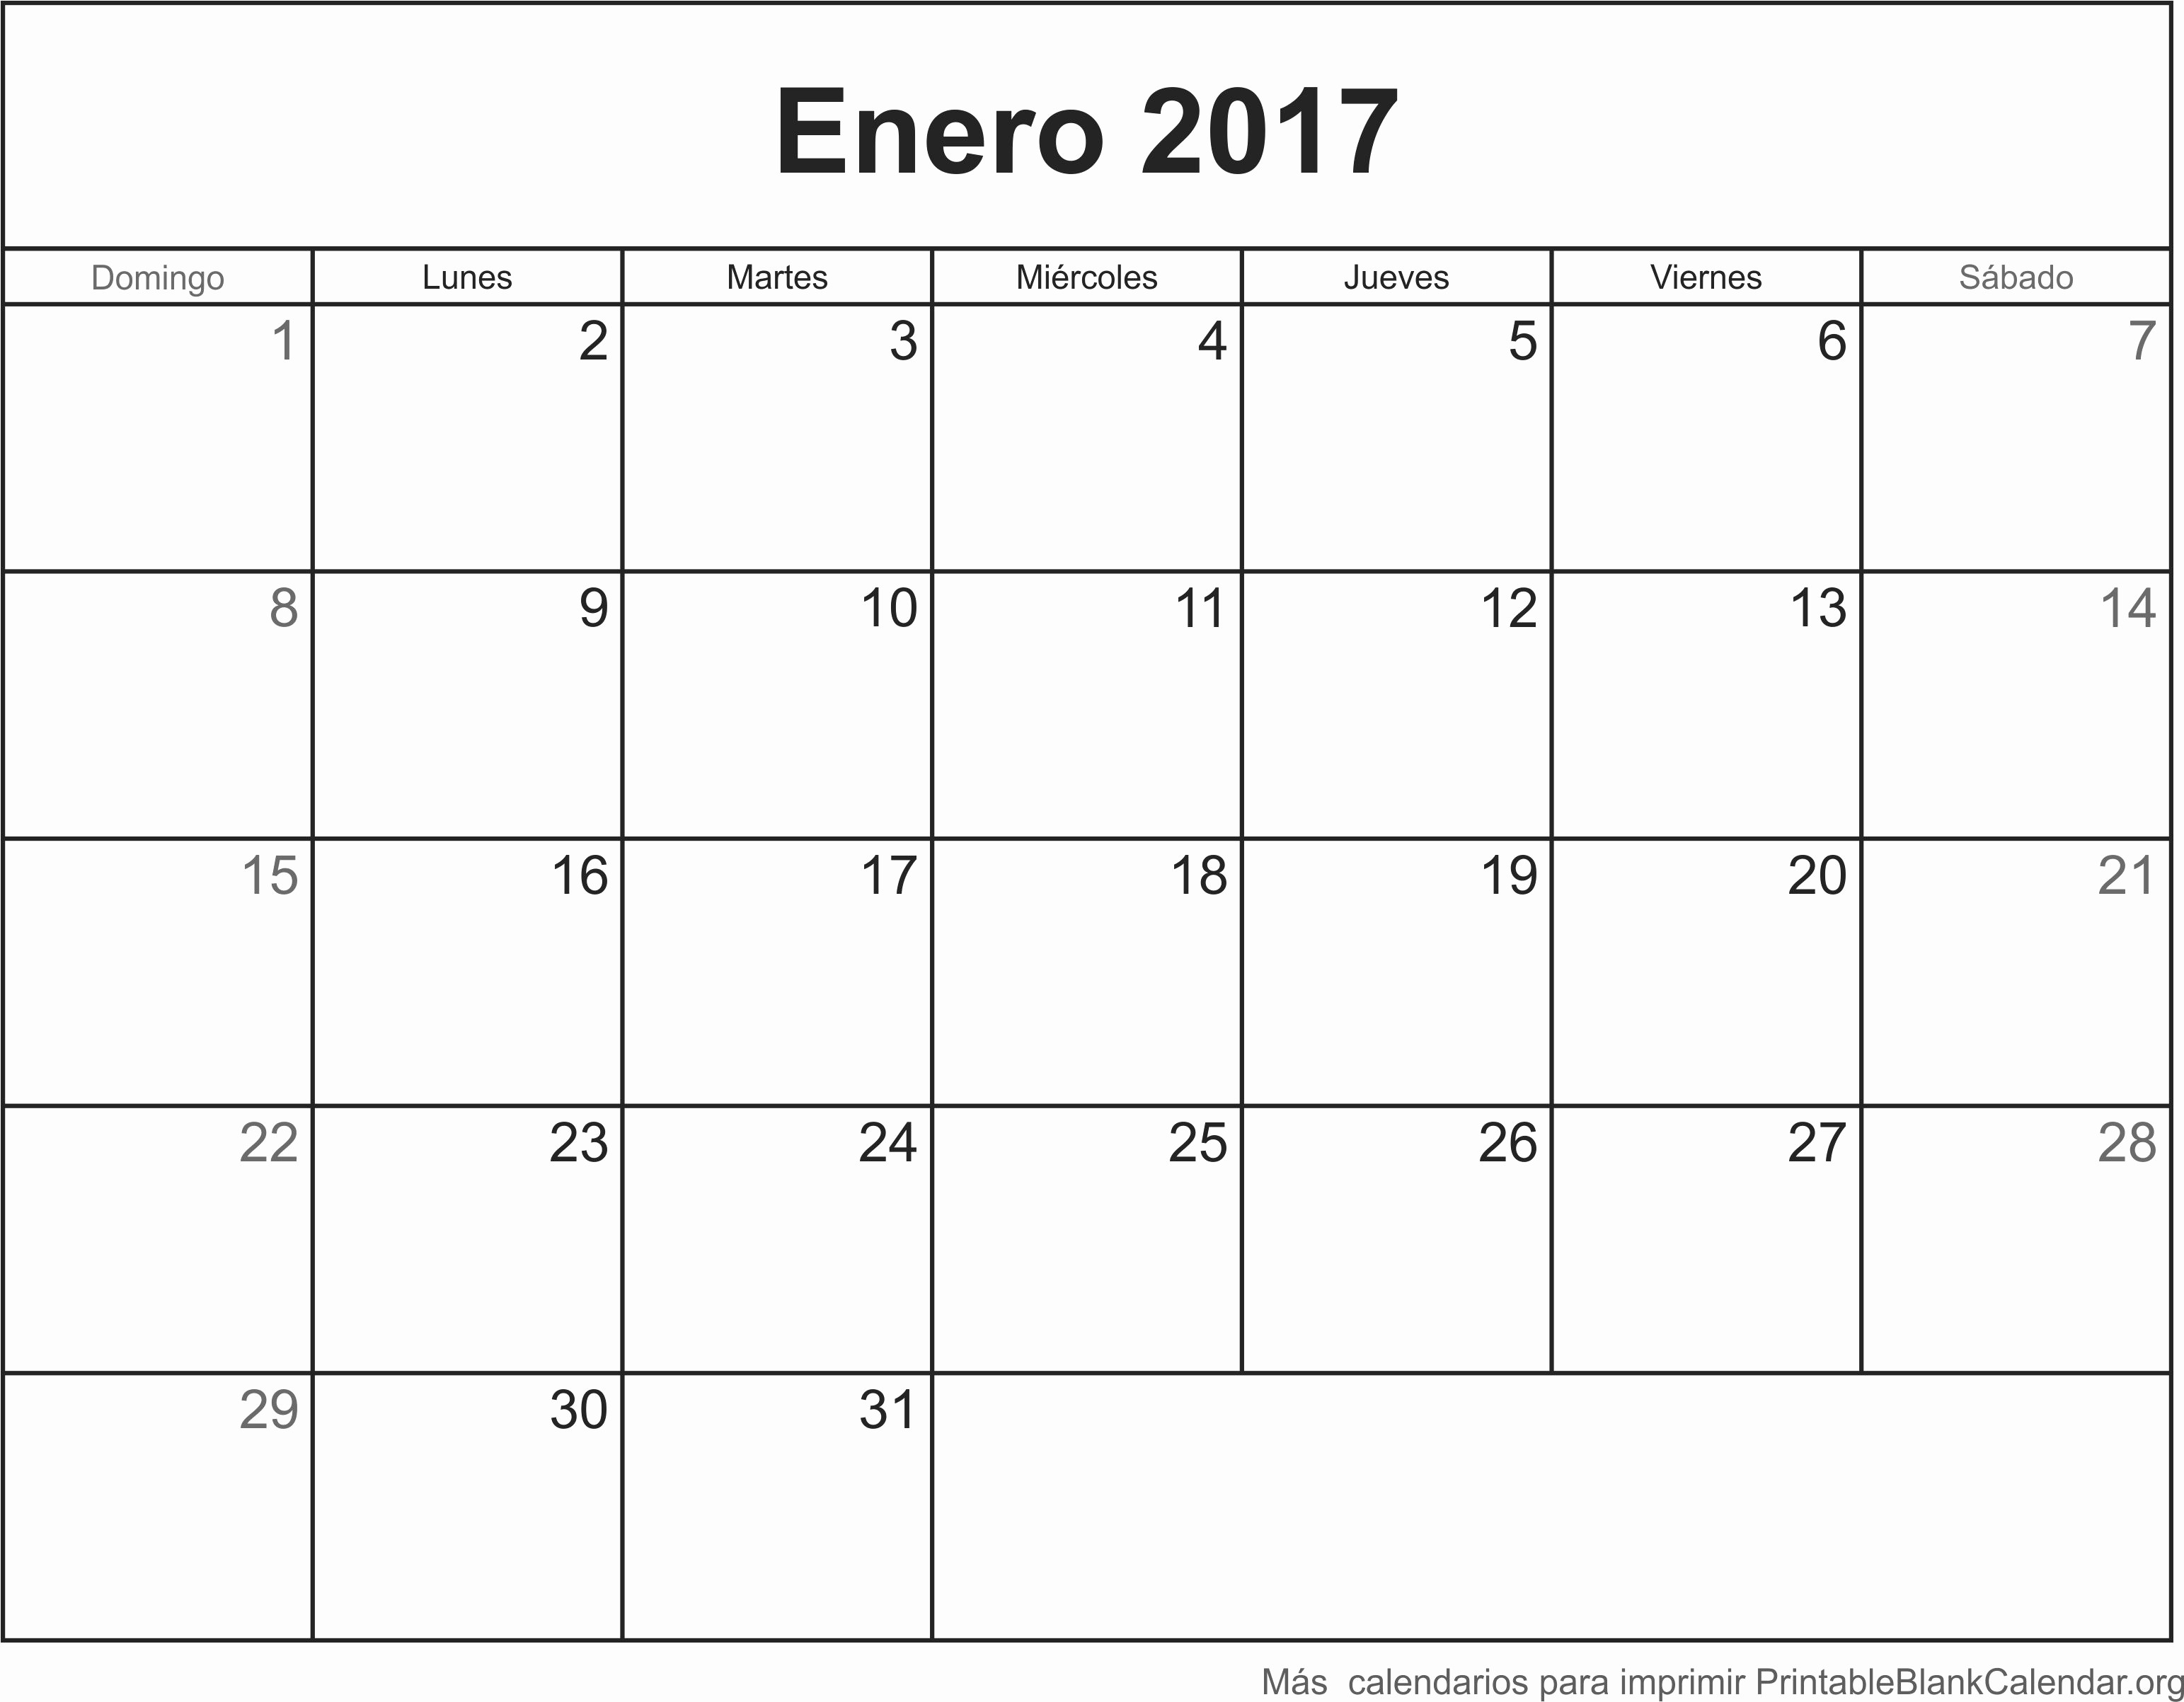 Calendario Anual 2017 Para Imprimir Beautiful Enero 2017 Calendario Para Imprimir Calendarios Para